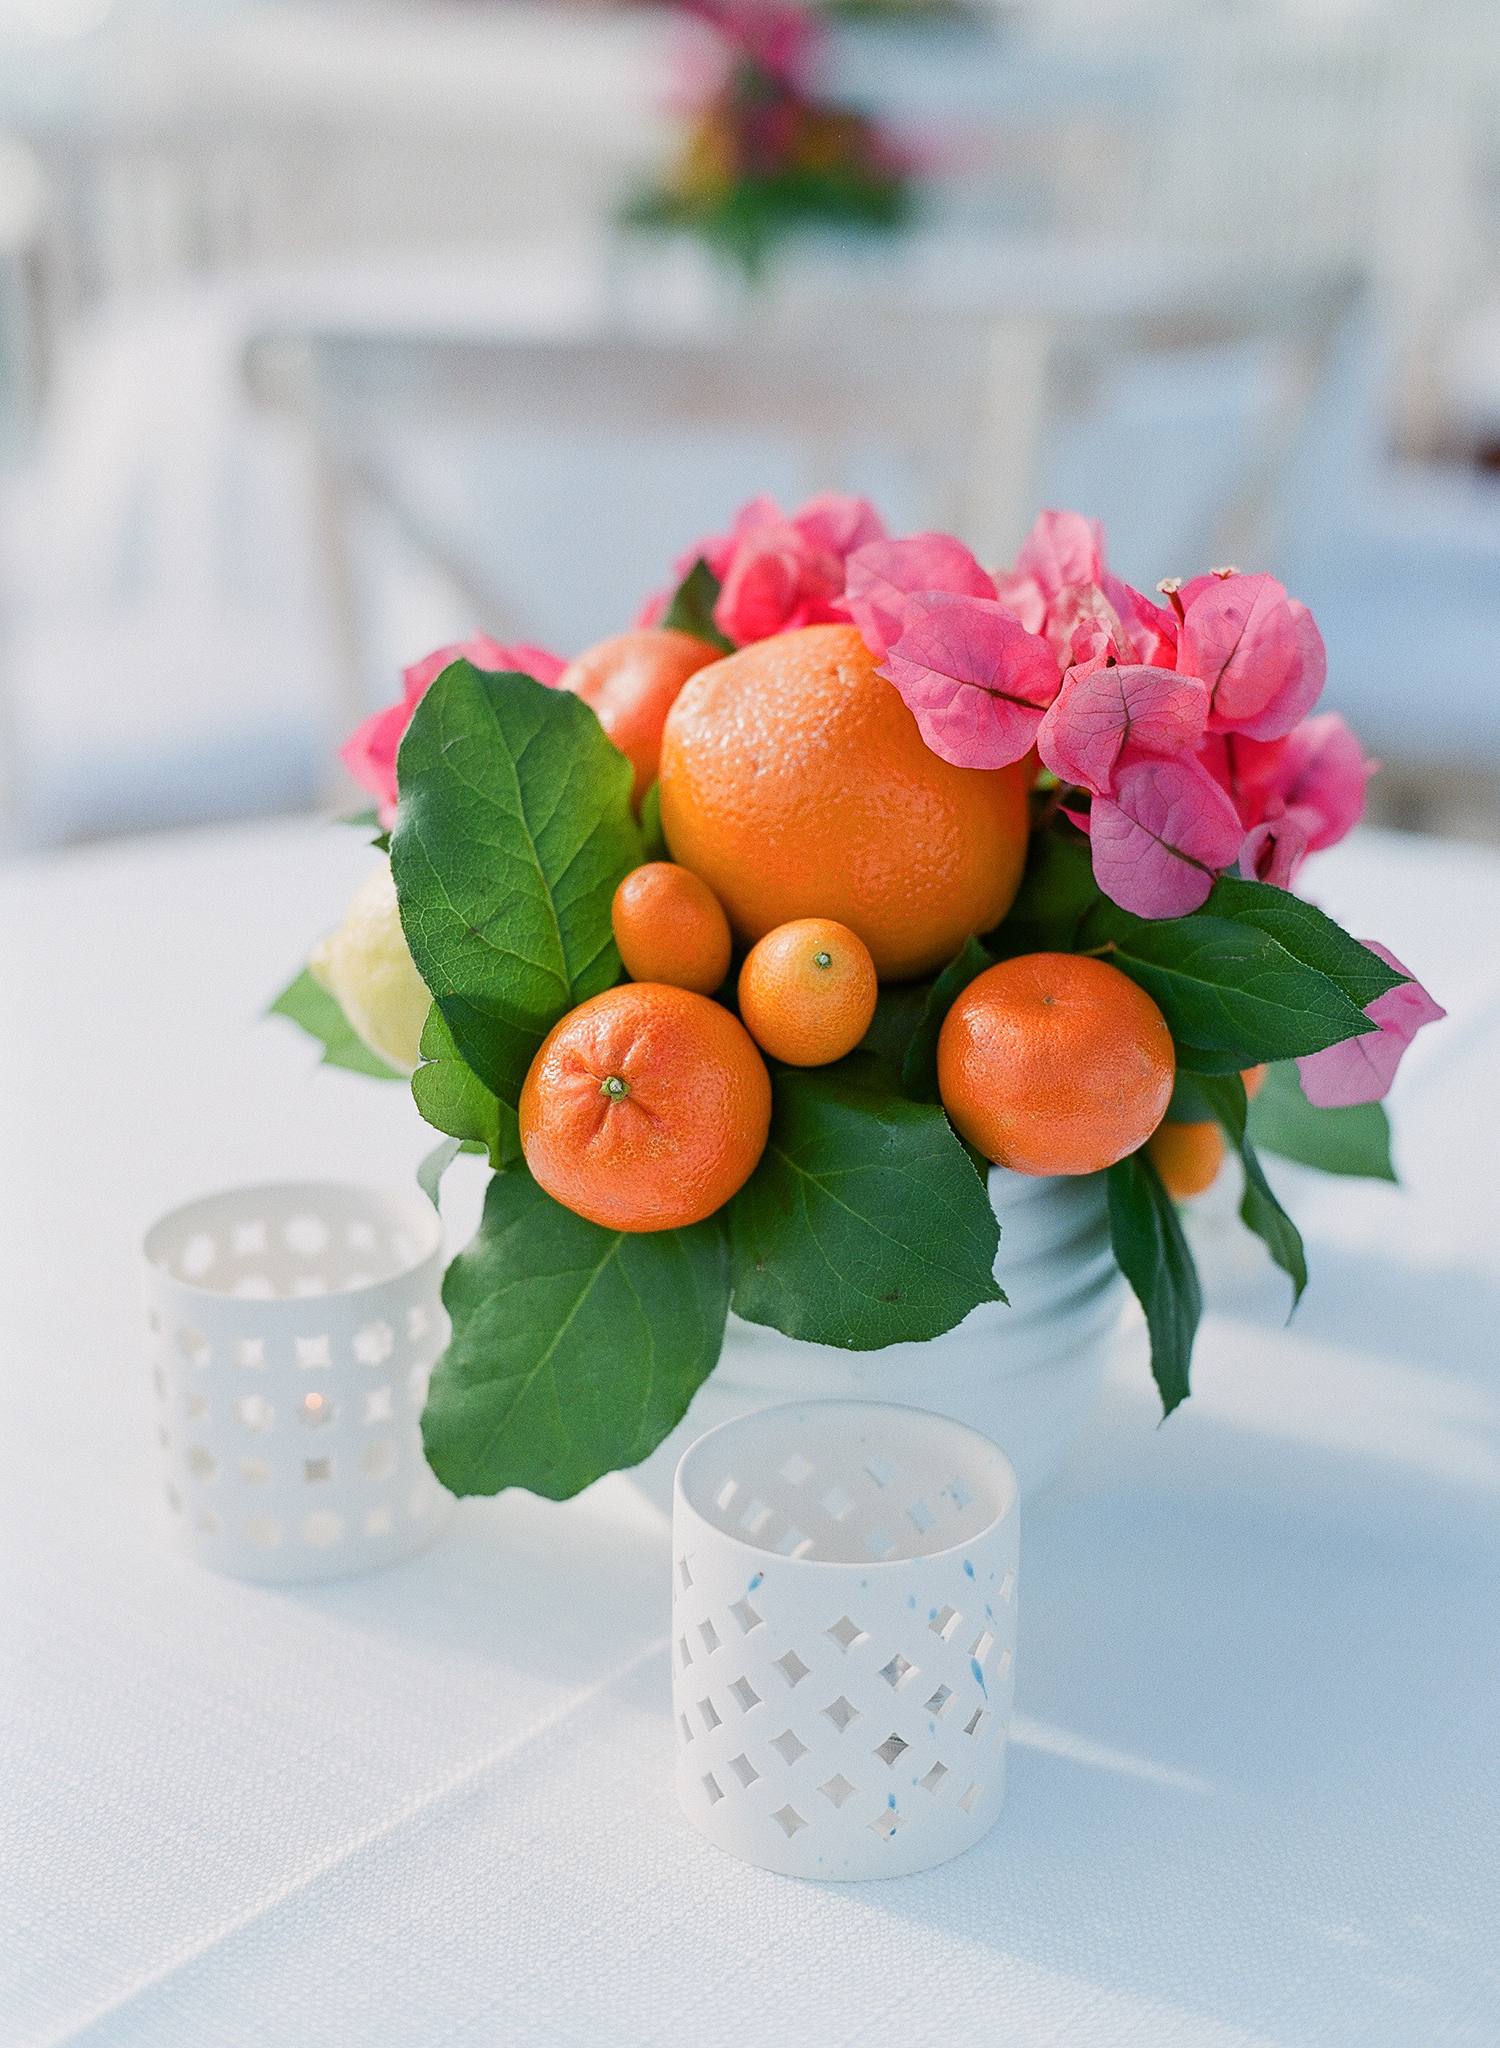 chelsea conor wedding welcome party citrus centerpiece